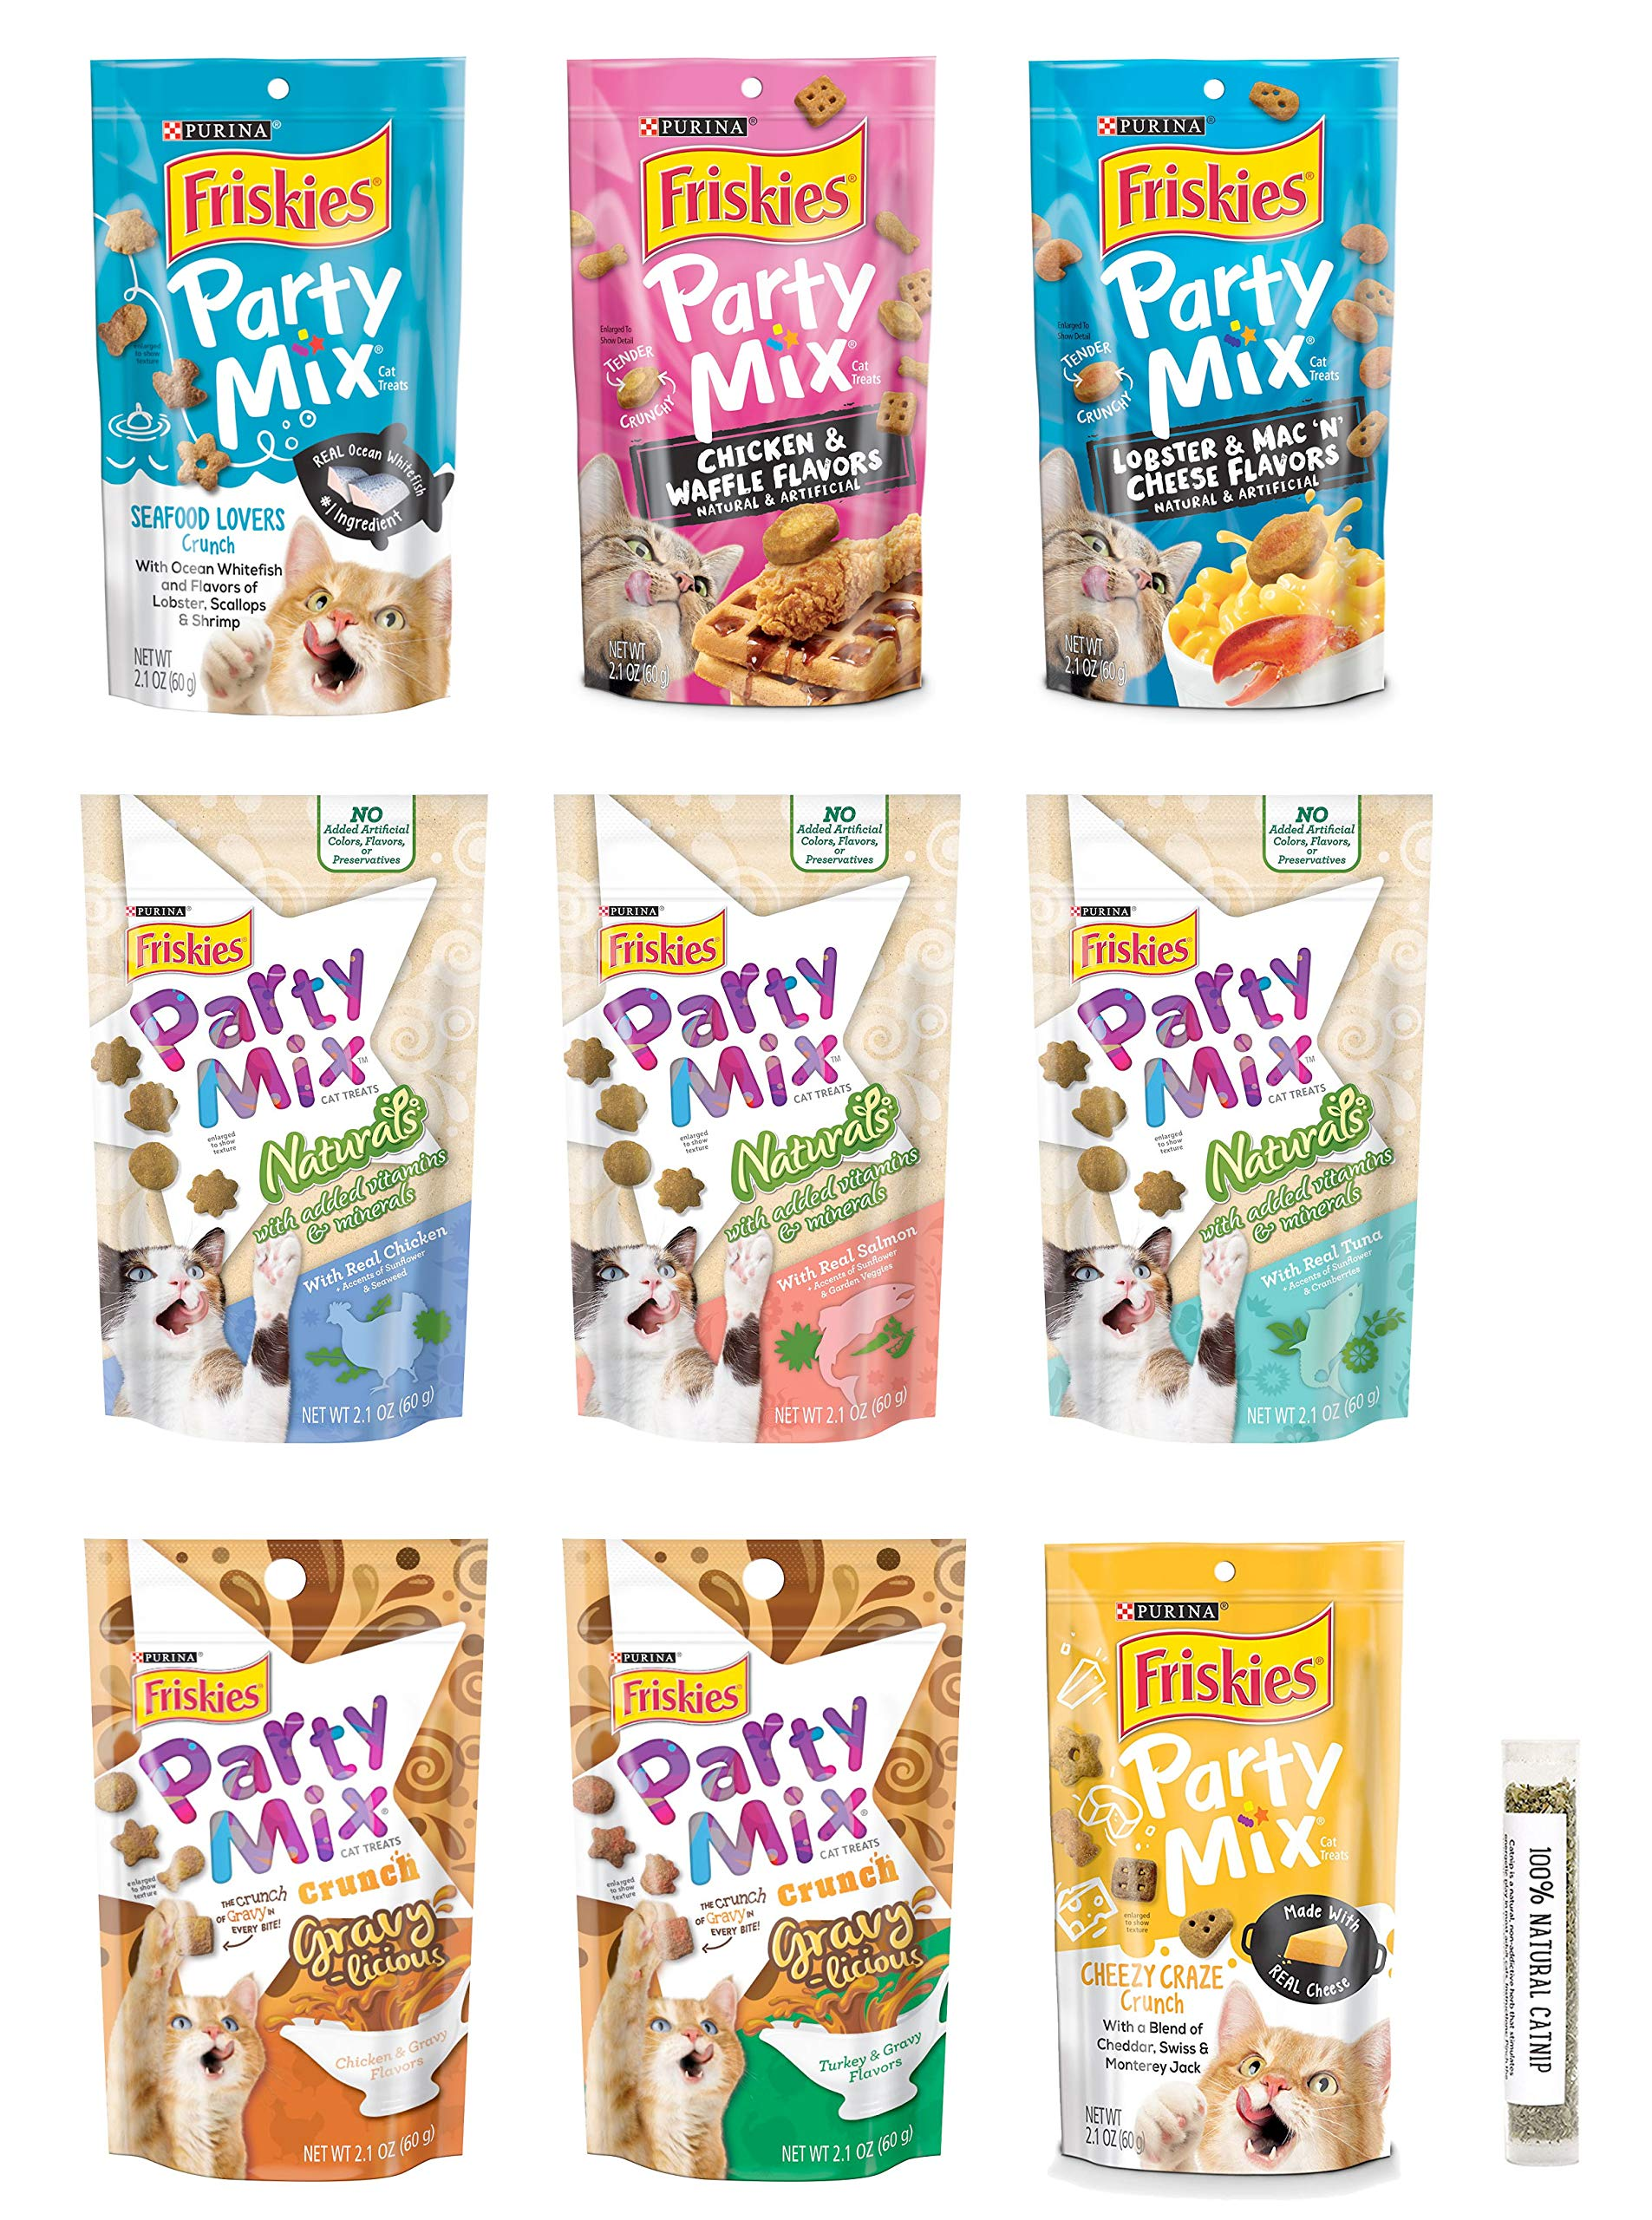 Friskies Party Mix Crunch Cat Treat Variety Bundle, 9 Flavors, 2.1 Ounces Each (9 Total Pouches) and 1 Tube of Amazing Cat Catnip